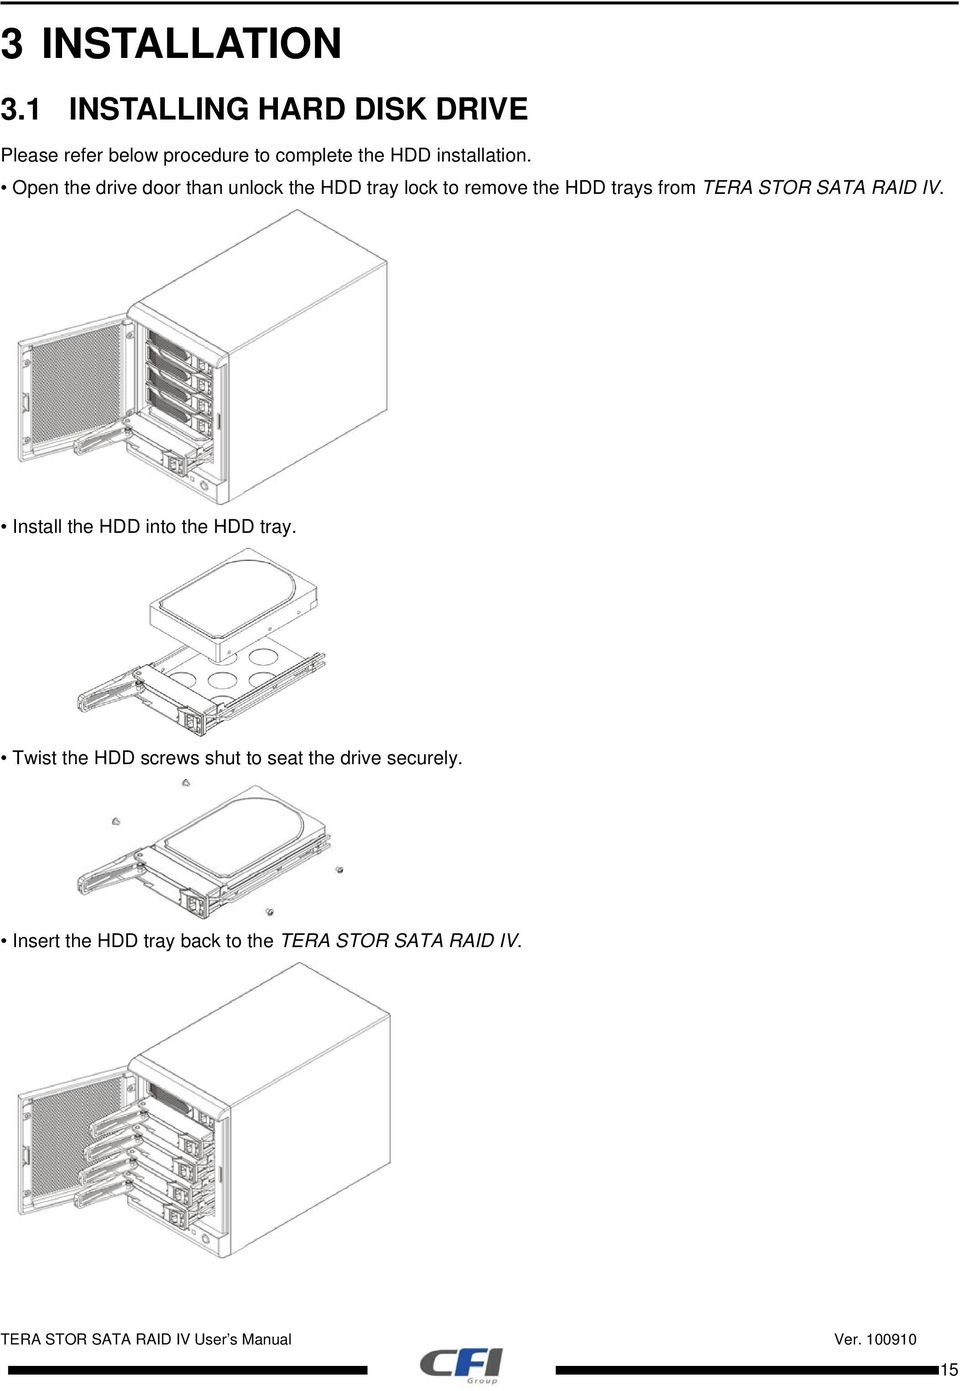 Open the drive door than unlock the HDD tray lock to remove the HDD trays from TERA STOR SATA RAID IV.